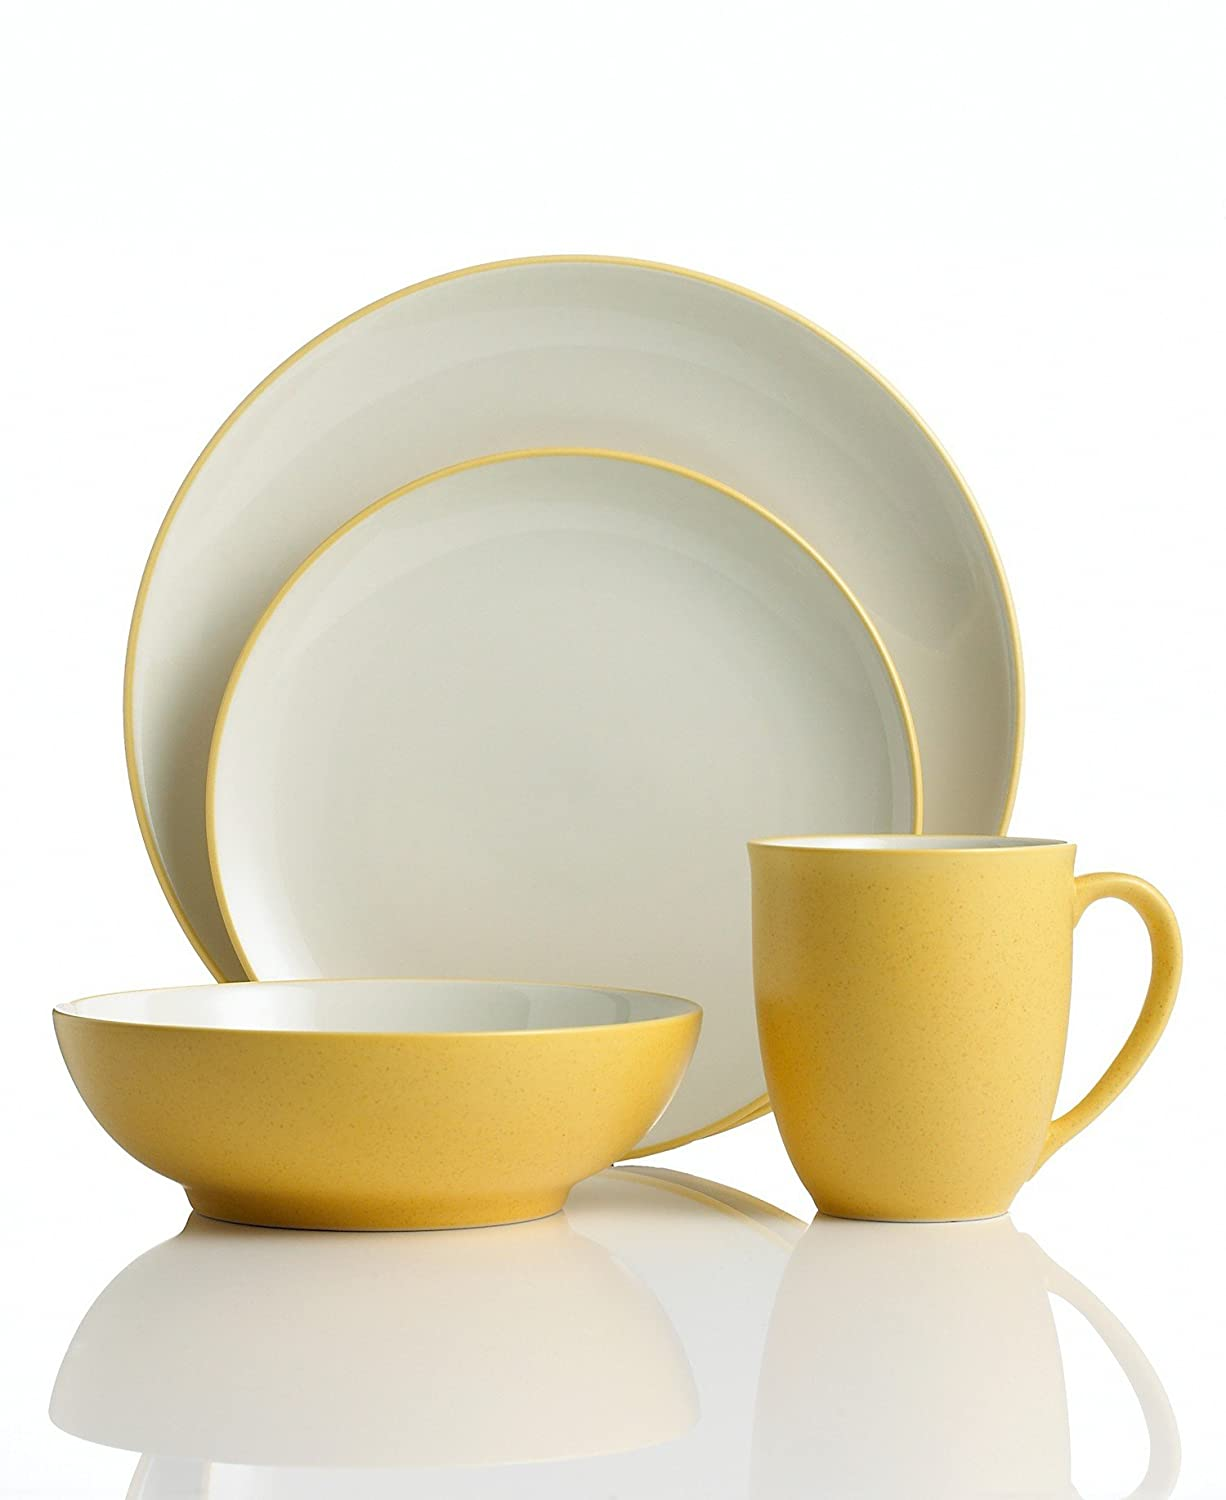 Amazon.com | Noritake Colorwave Mustard 4-Piece Place Setting Dinnerware Sets Dinnerware Sets  sc 1 st  Amazon.com & Amazon.com | Noritake Colorwave Mustard 4-Piece Place Setting ...